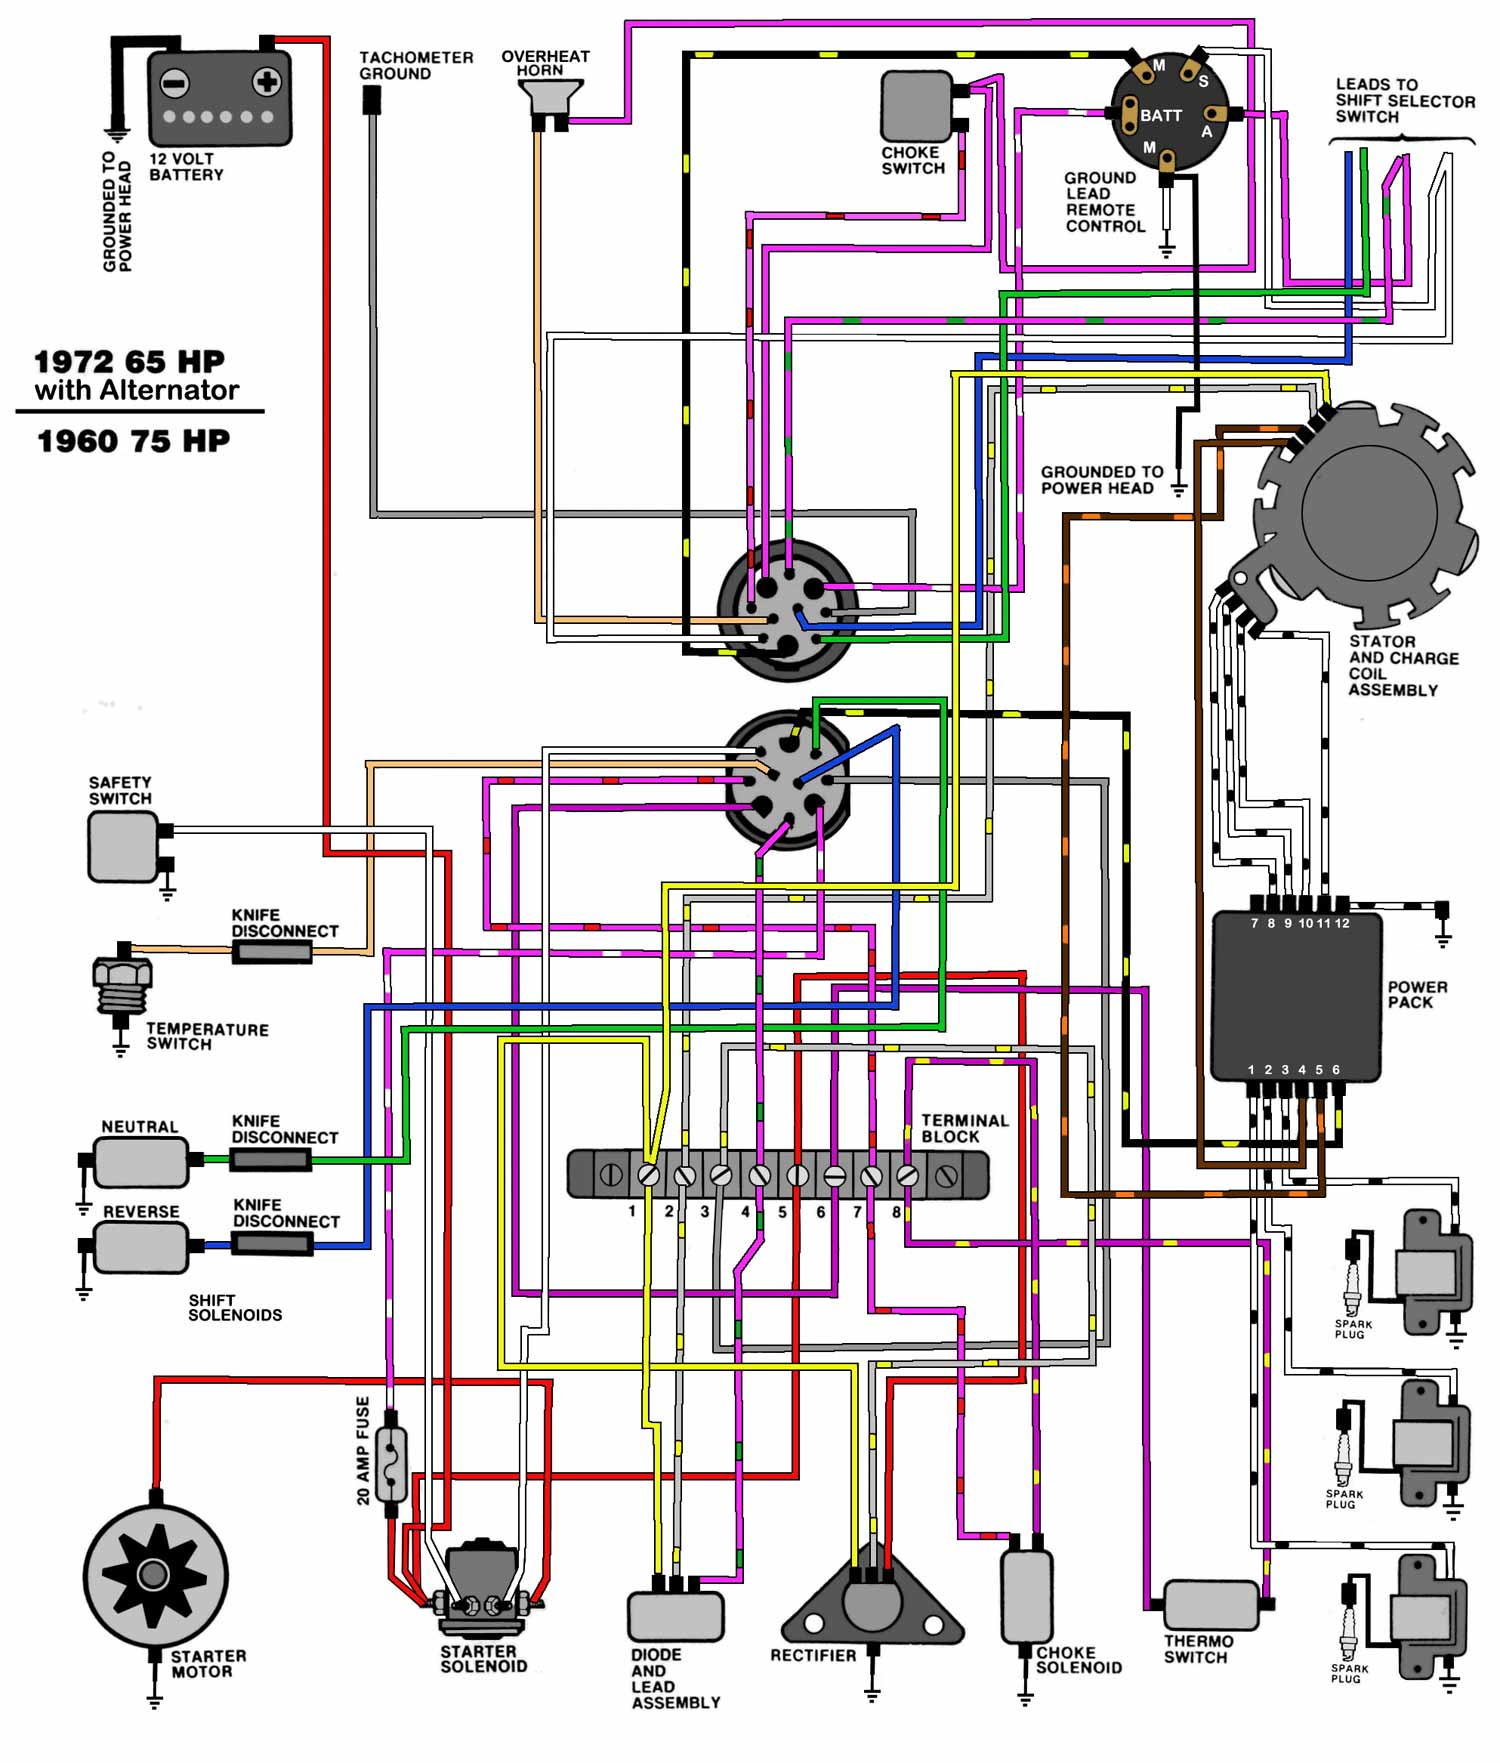 s electric omc wiring diagram 1972 auto electrical wiring diagram challenger starter wiring diagram evinrude johnson outboard wiring diagrams